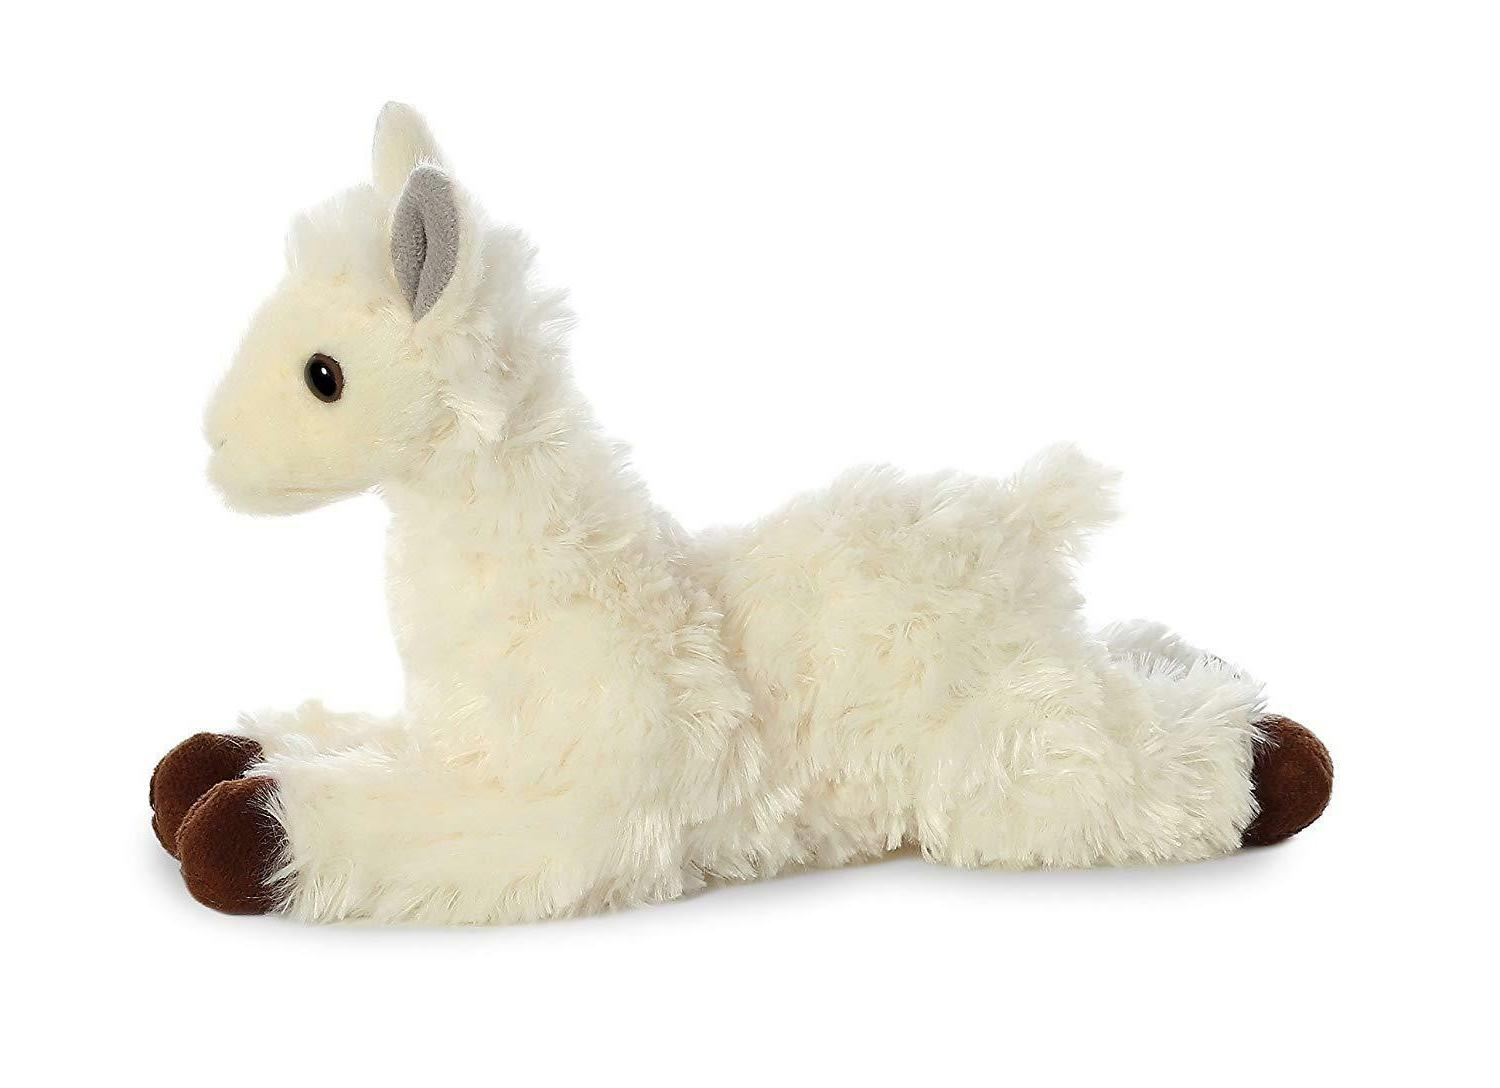 Aurora World Flopsie White/Cream Llama Stuffed Animal